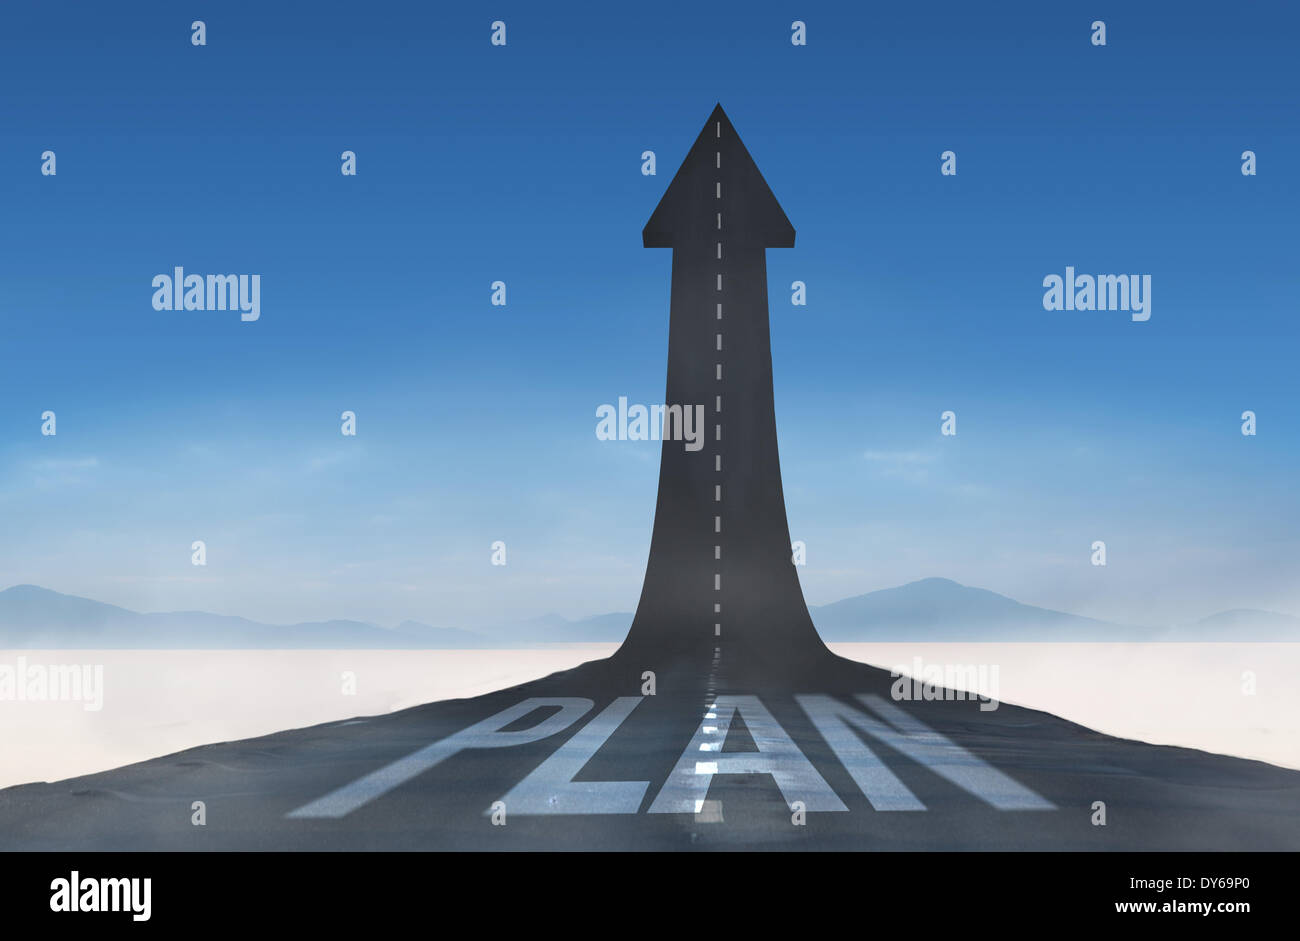 Plan against road turning into arrow - Stock Image